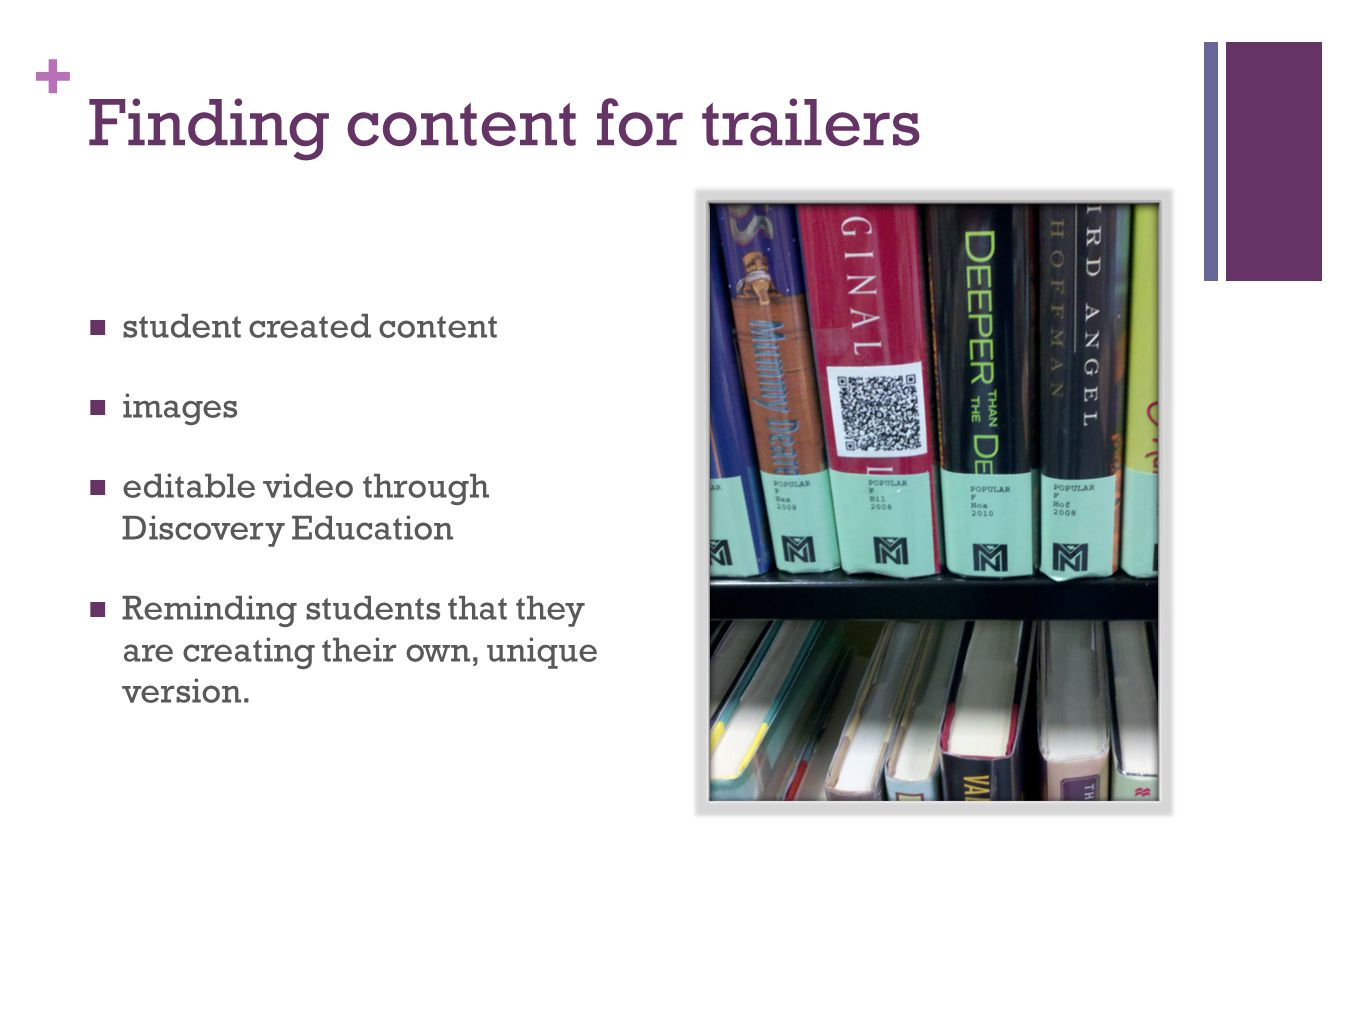 + Finding content for trailers student created content images editable video through Discovery Education Reminding students that they are creating their own, unique version.